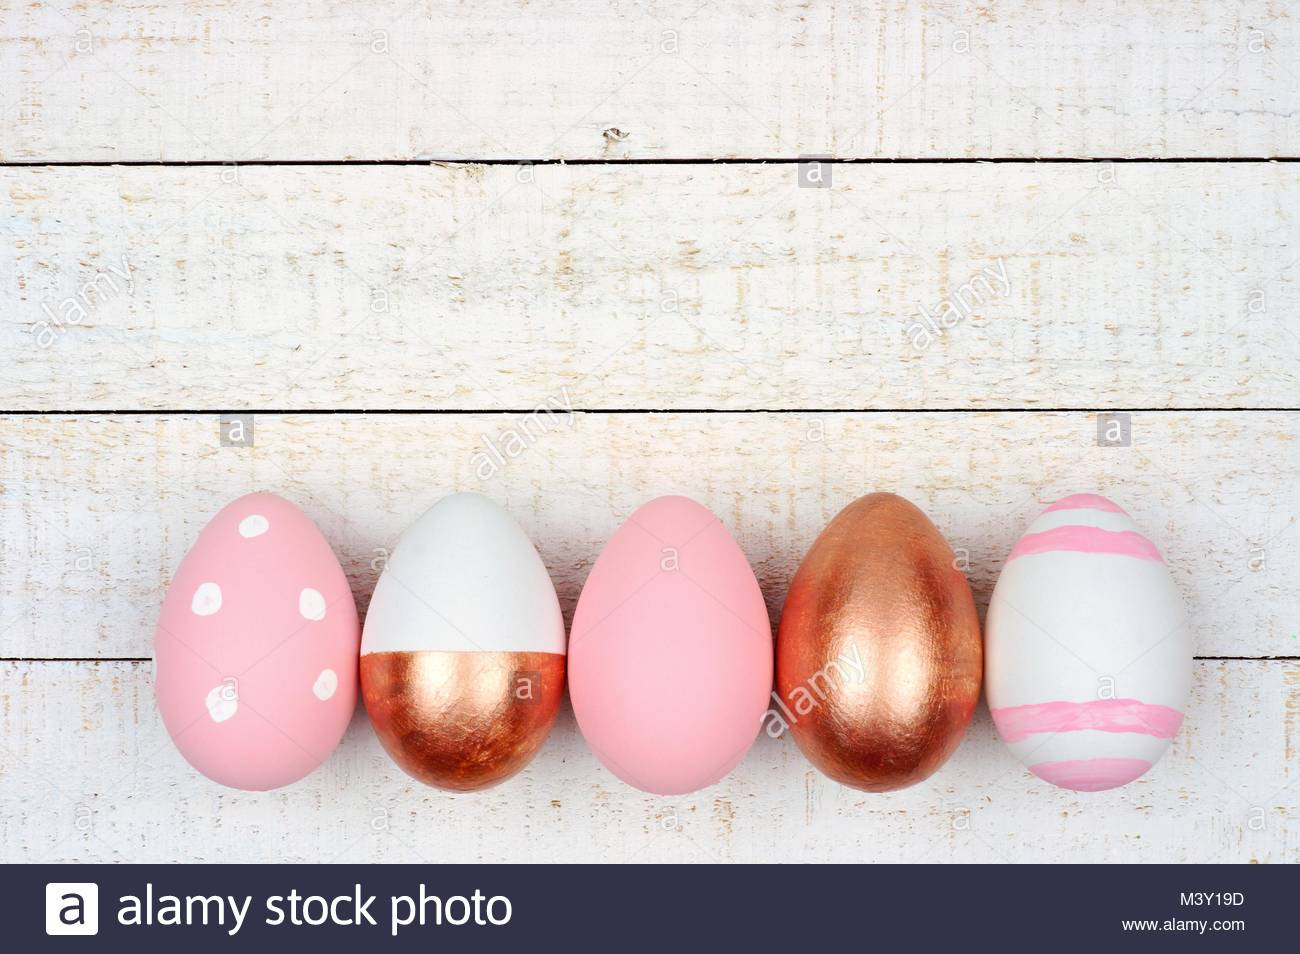 White Eggs And Gold Stock Photos Amp White Eggs And Gold